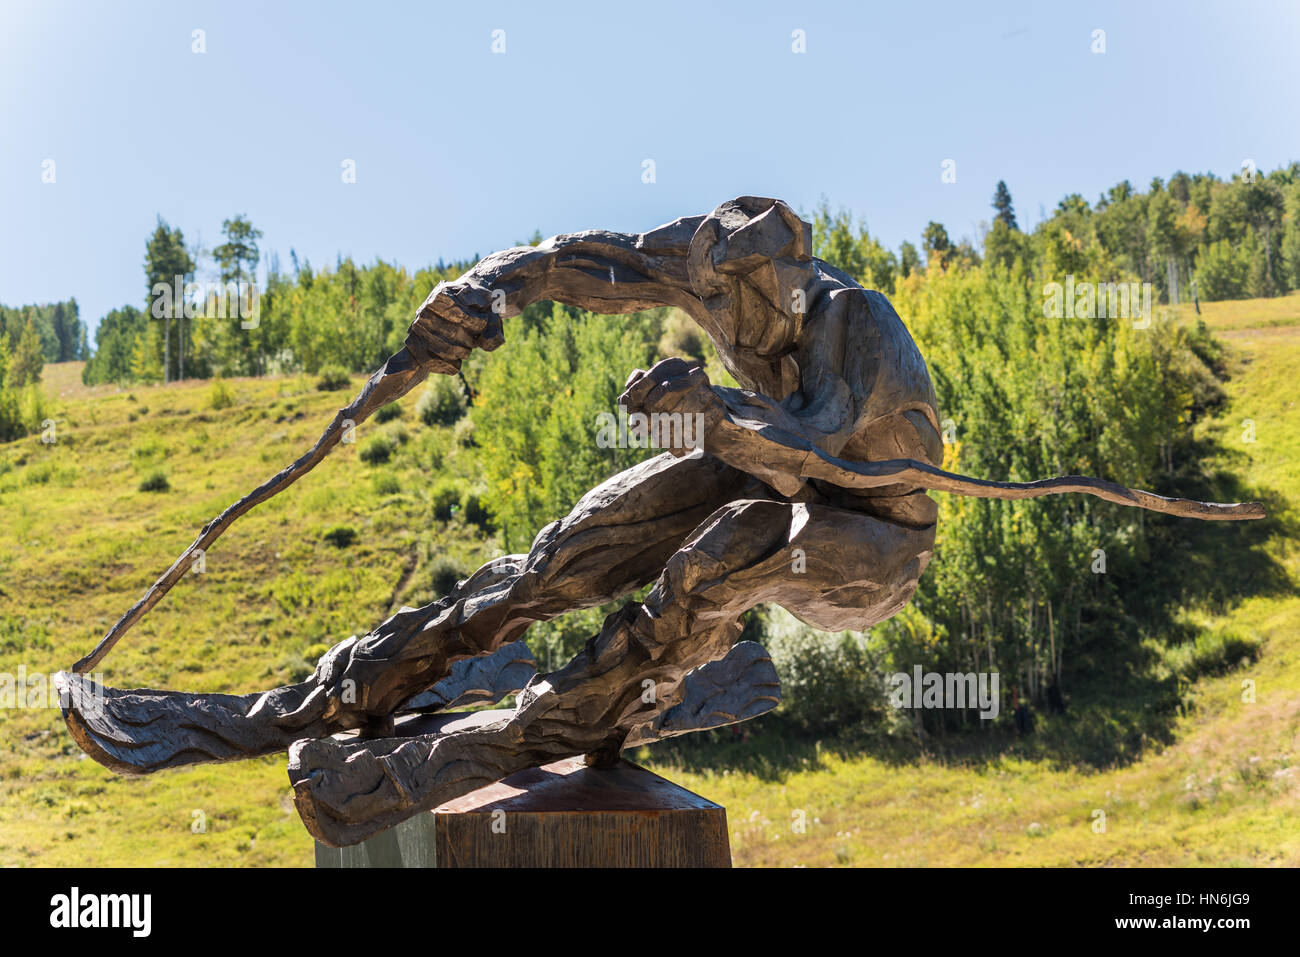 Vail, USA - September 10, 2015: Sculpture of ski racer 'The Edge' by Gail Folwell in Vail, Colorado USA. - Stock Image